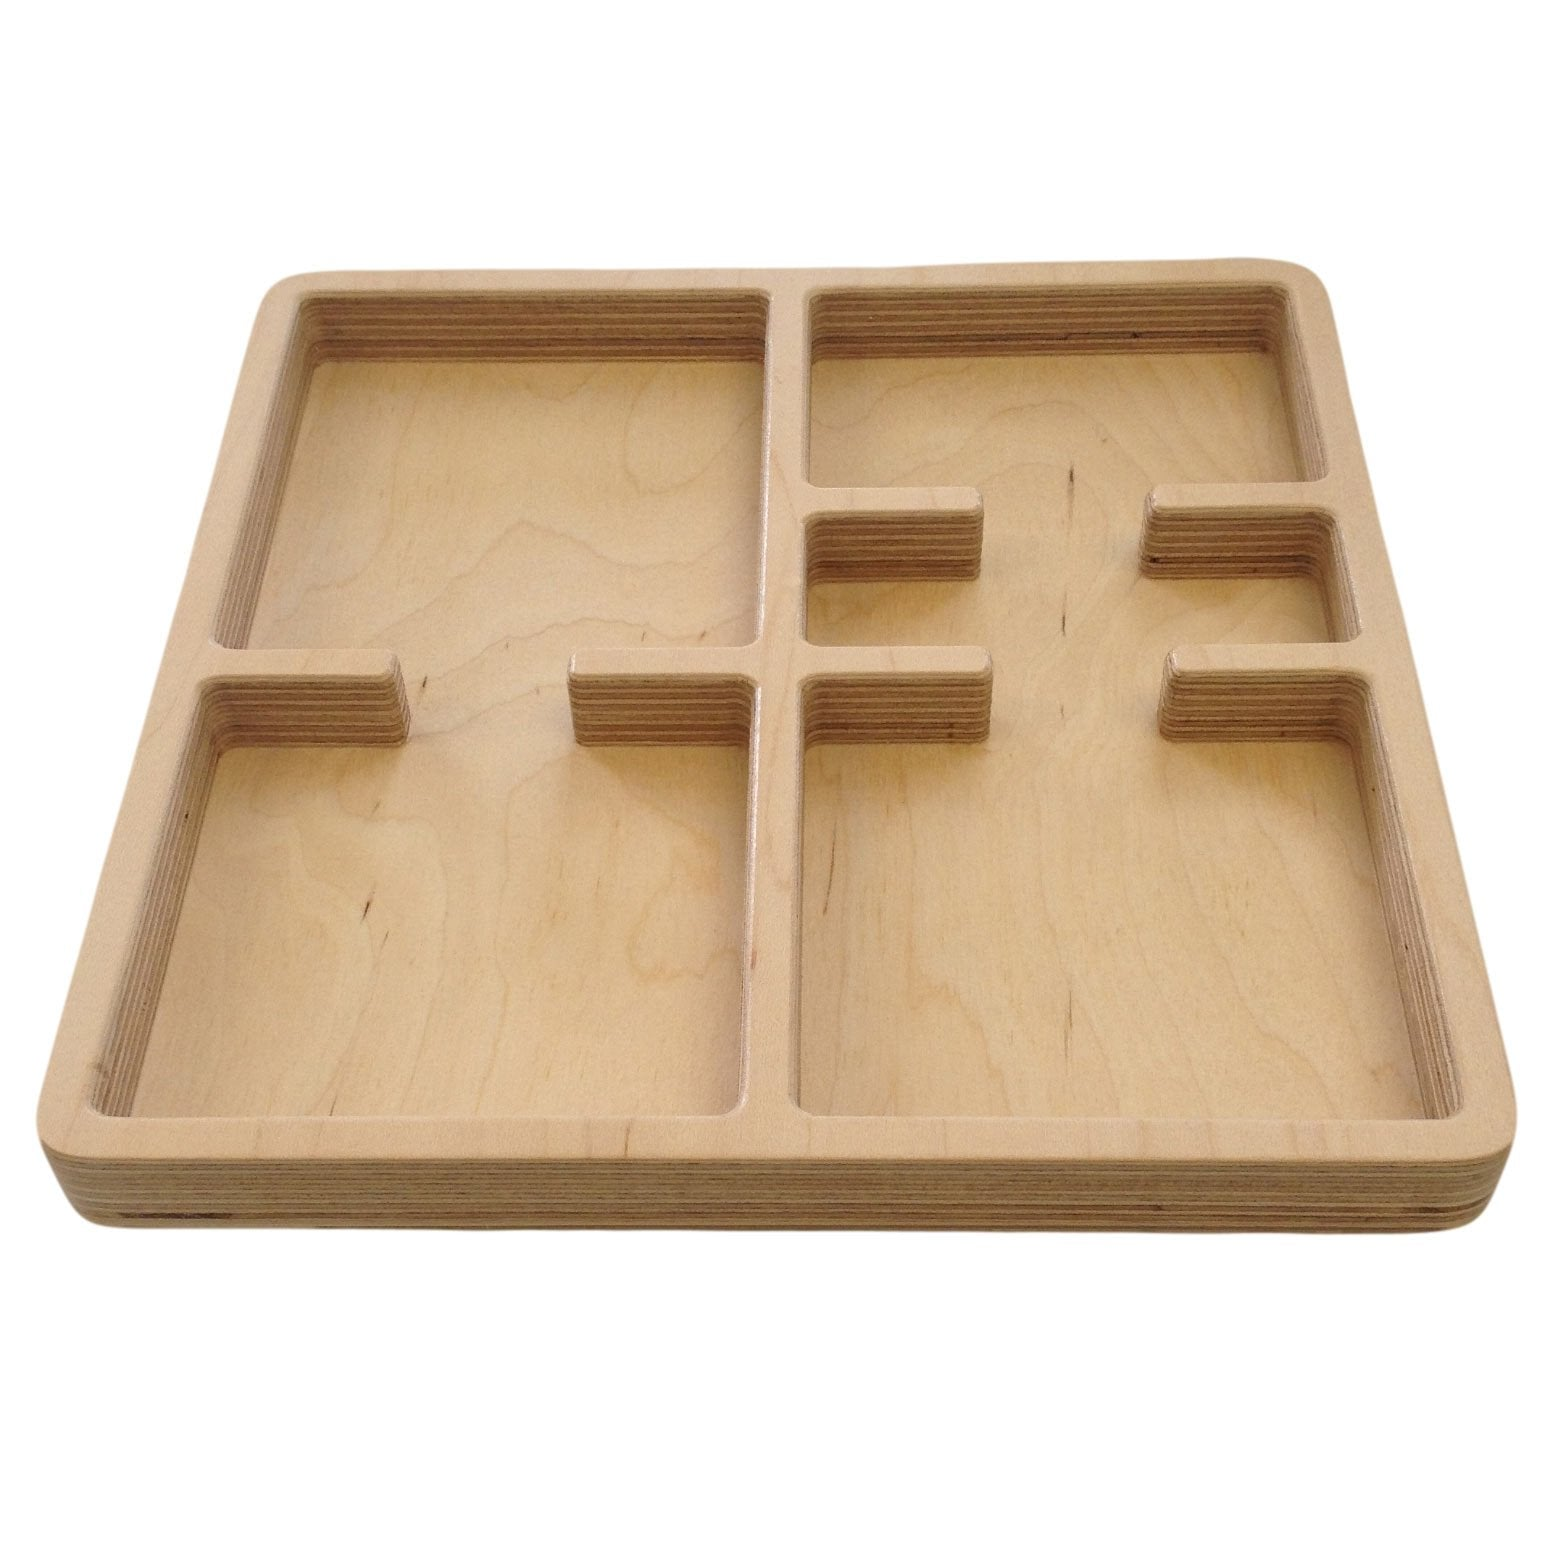 Storage And Display - Small Size 5 Part Tray